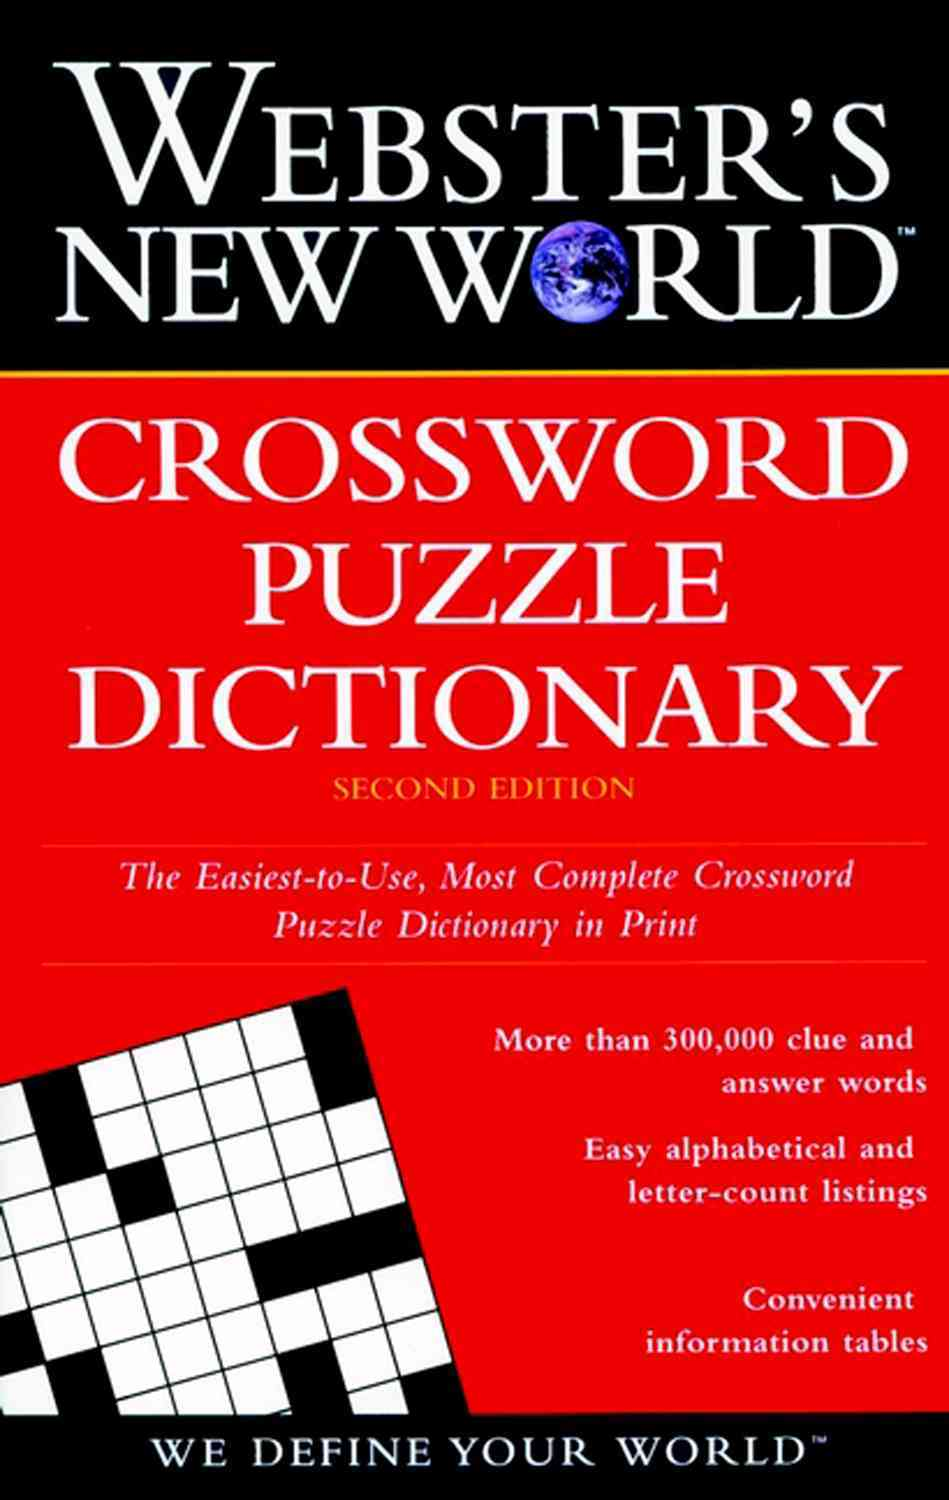 Webster's New World Crossword Puzzle Dictionary By Whitfield, Jane Shaw